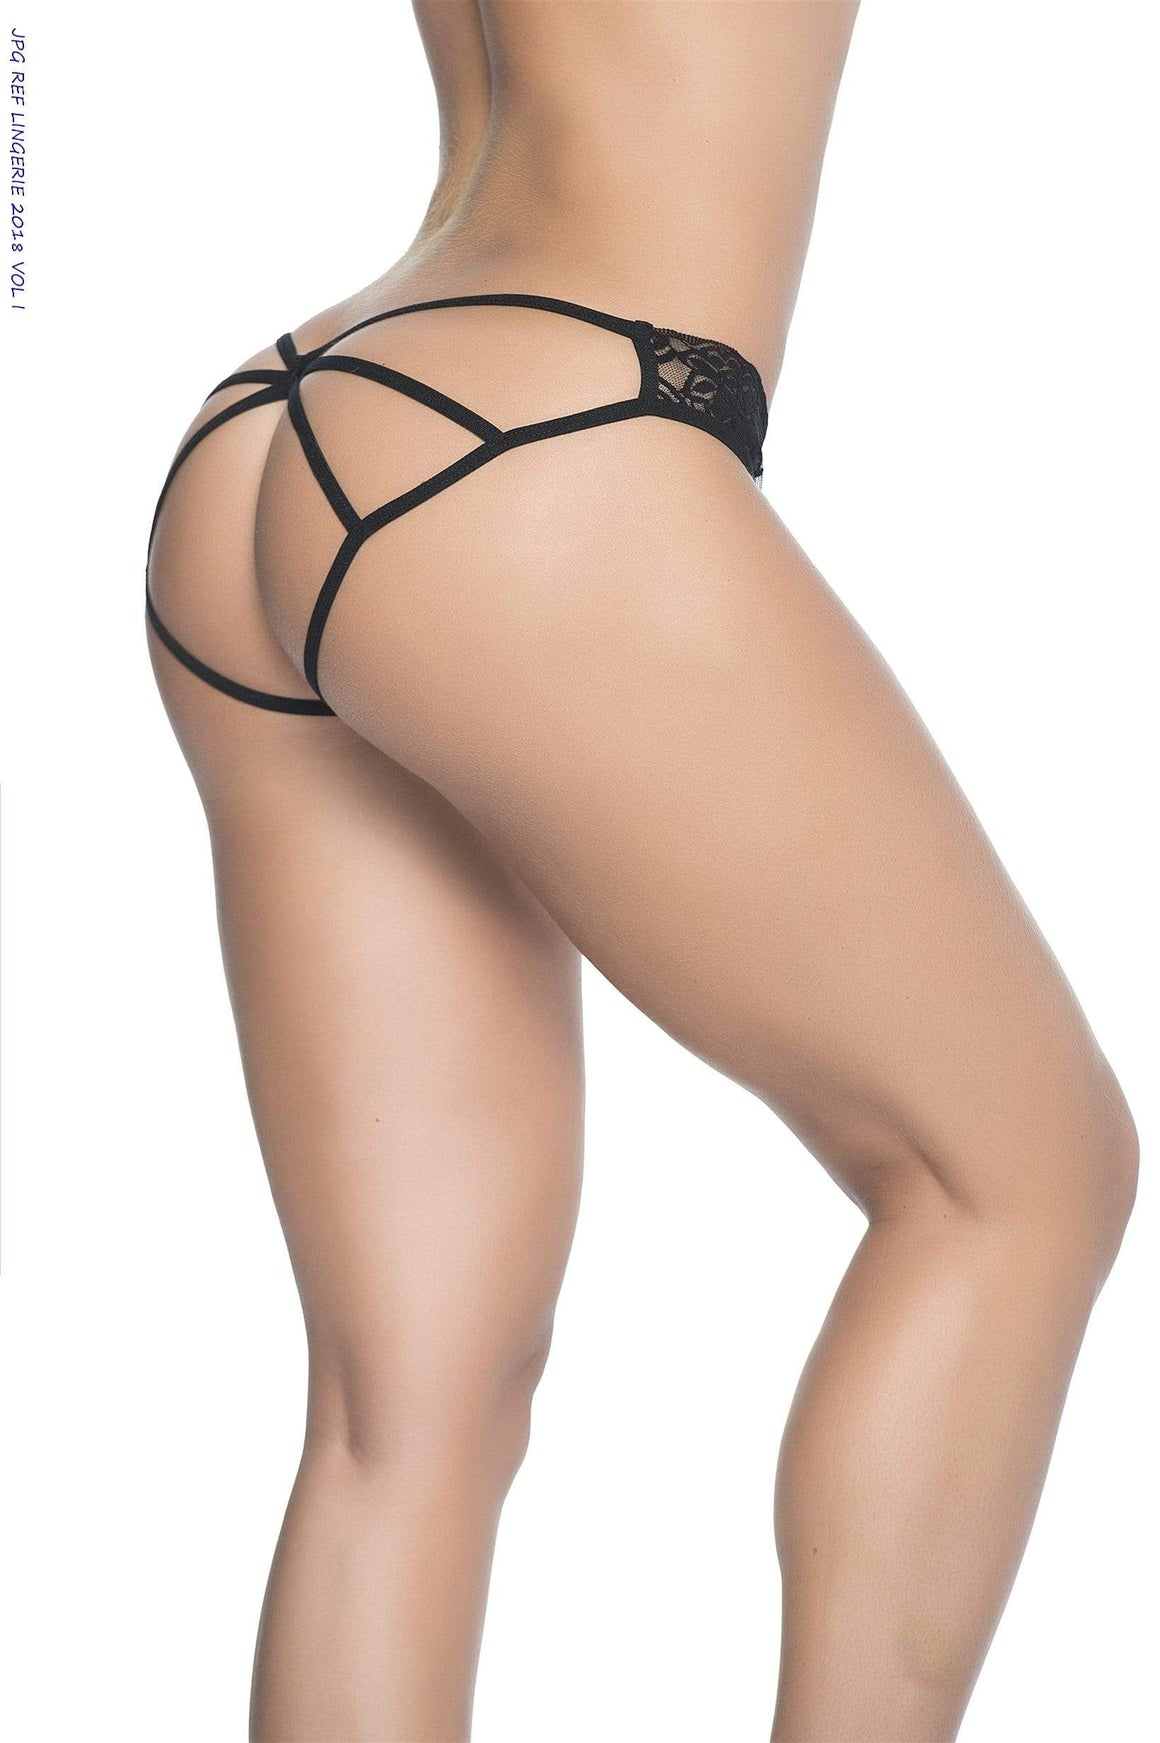 mapale SMALL / Black Black Lace Cage Detailed  Rear Panty Lingerie (Many Colors Available) SHS-97-BLACK-S-MA-3 Mapale 96 Sexy Black Lace Thong Bikini Bottom pink white yellow ivory green orange red Apparel & Accessories > Clothing > Underwear & Socks > Underwear